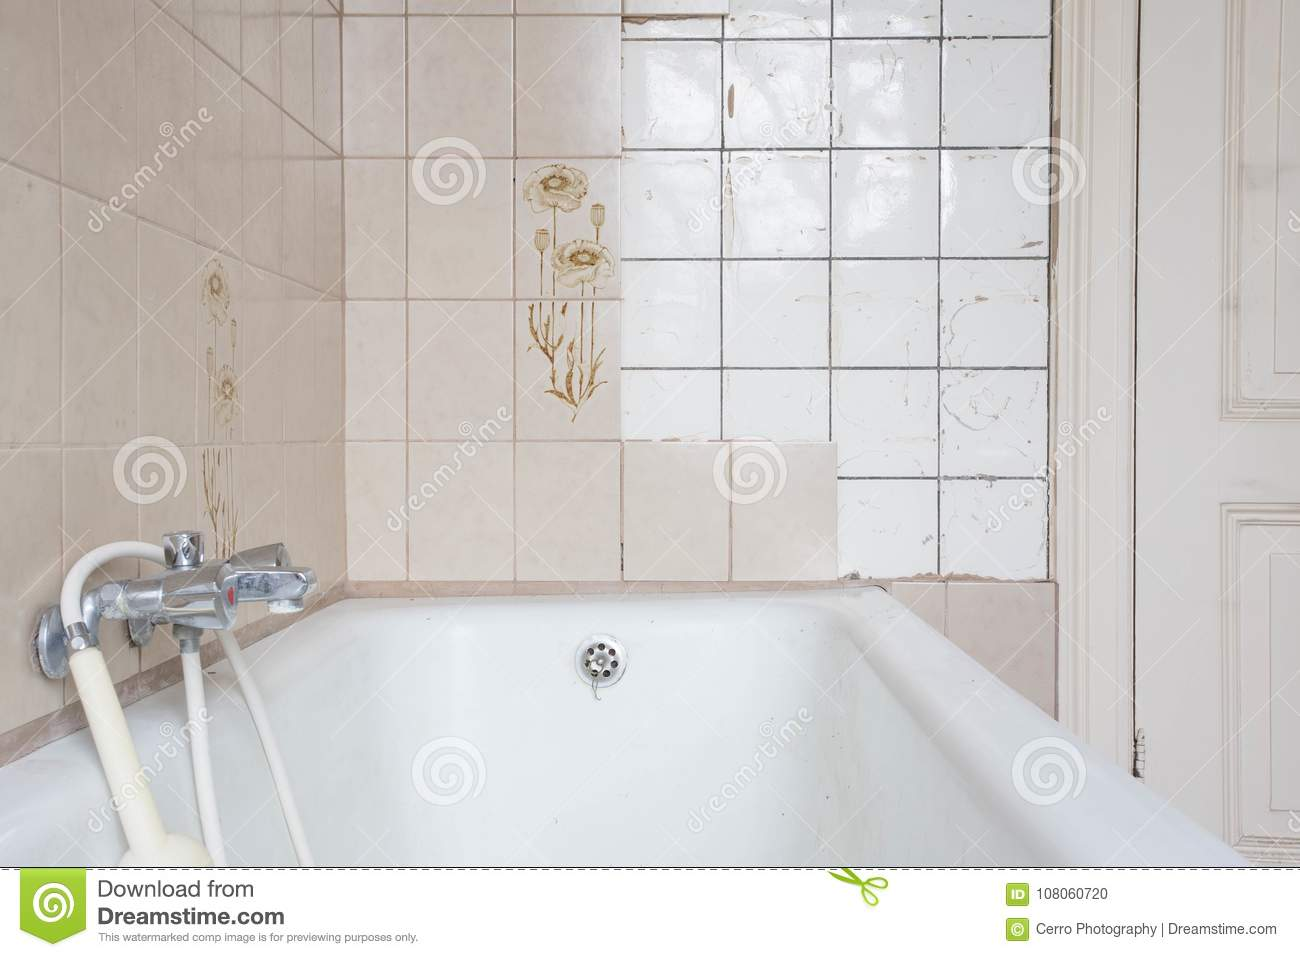 Old Bath Tub With Dirty Tiles Stock Photo - Image of bathtub, detail ...